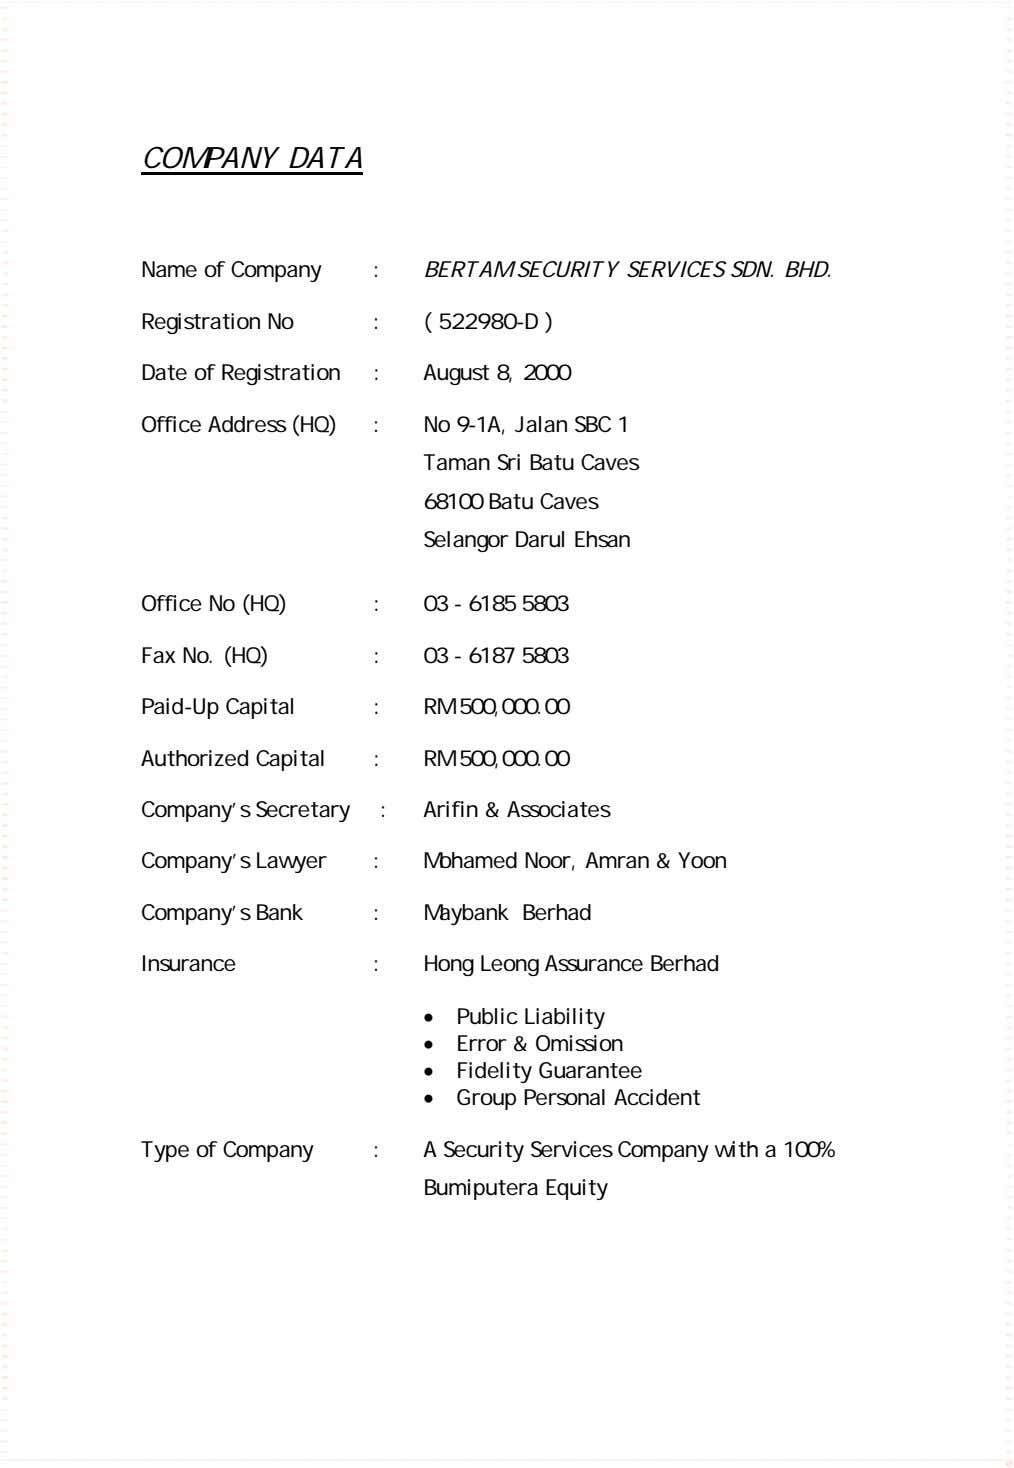 COMPANY DATA Name of Company : BERTAM SECURITY SERVICES SDN. BHD. Registration No : (